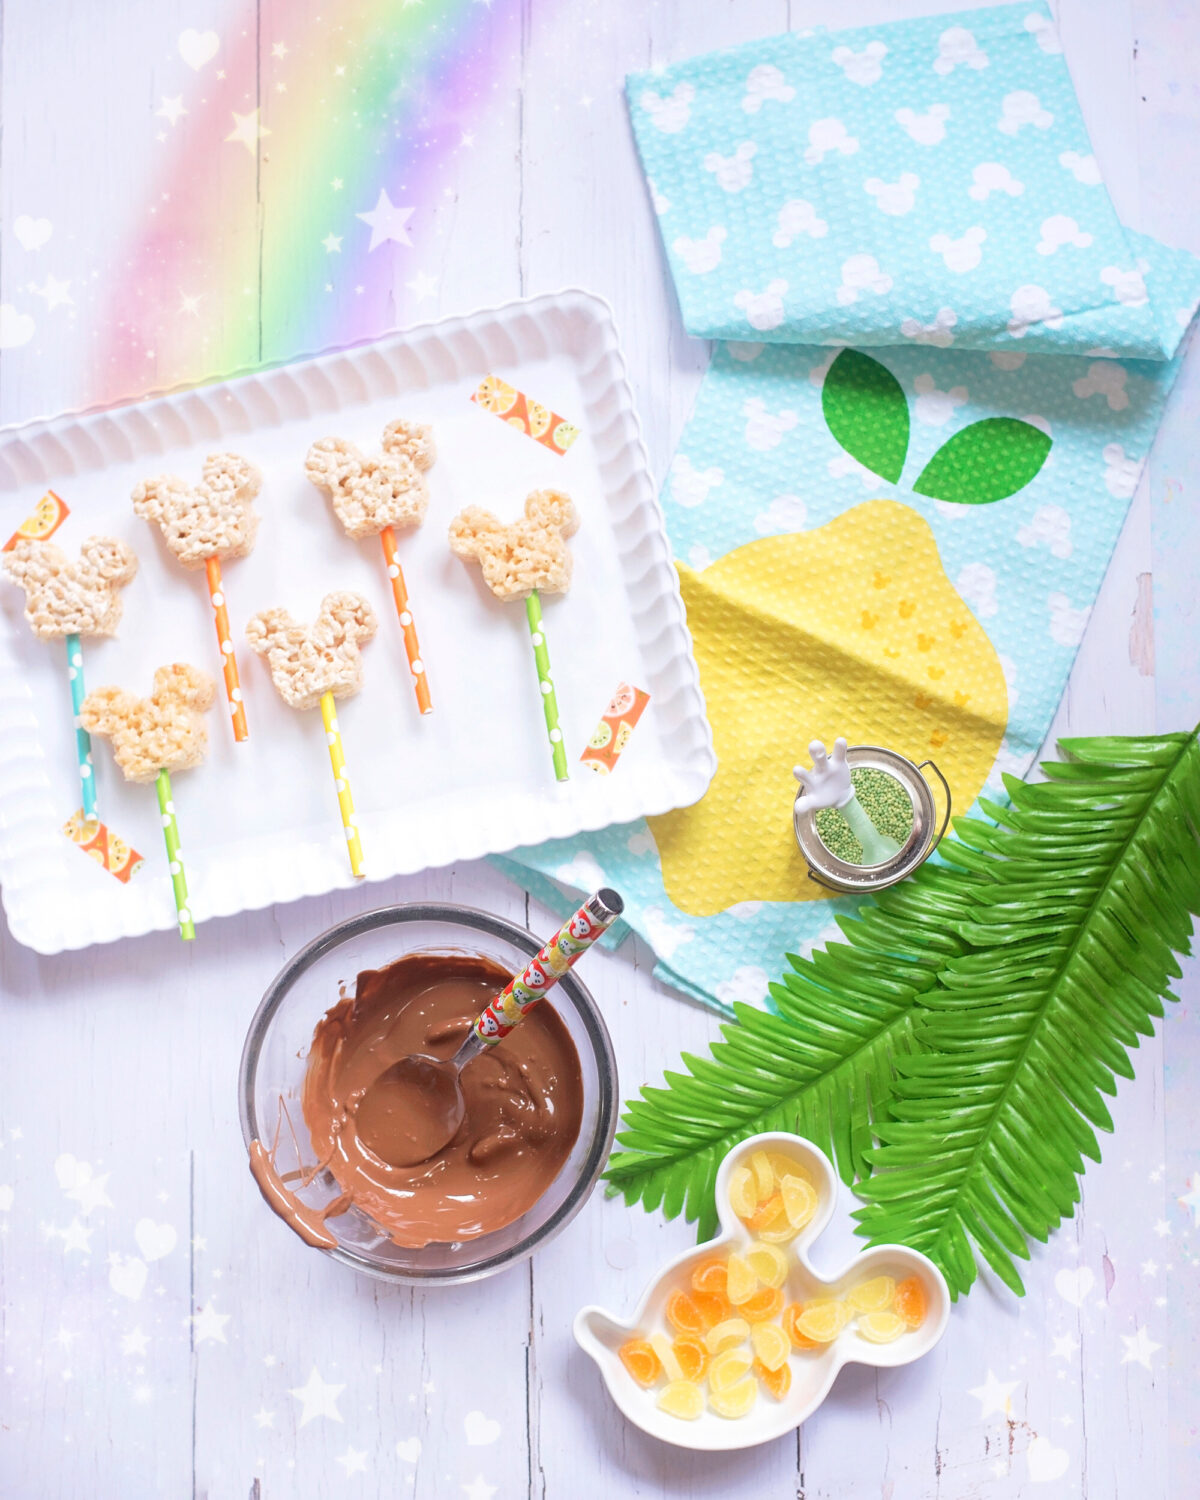 Image shows scalloped tray of summer themed Mickey Mouse Rice Krispie Treats surrounded by orange and lemon slices and tropical leaves, Disney tea towels and Minnie Mouse straws. There is a bowl of melted chocolate ready to dip the Mickey Mouse treats into.